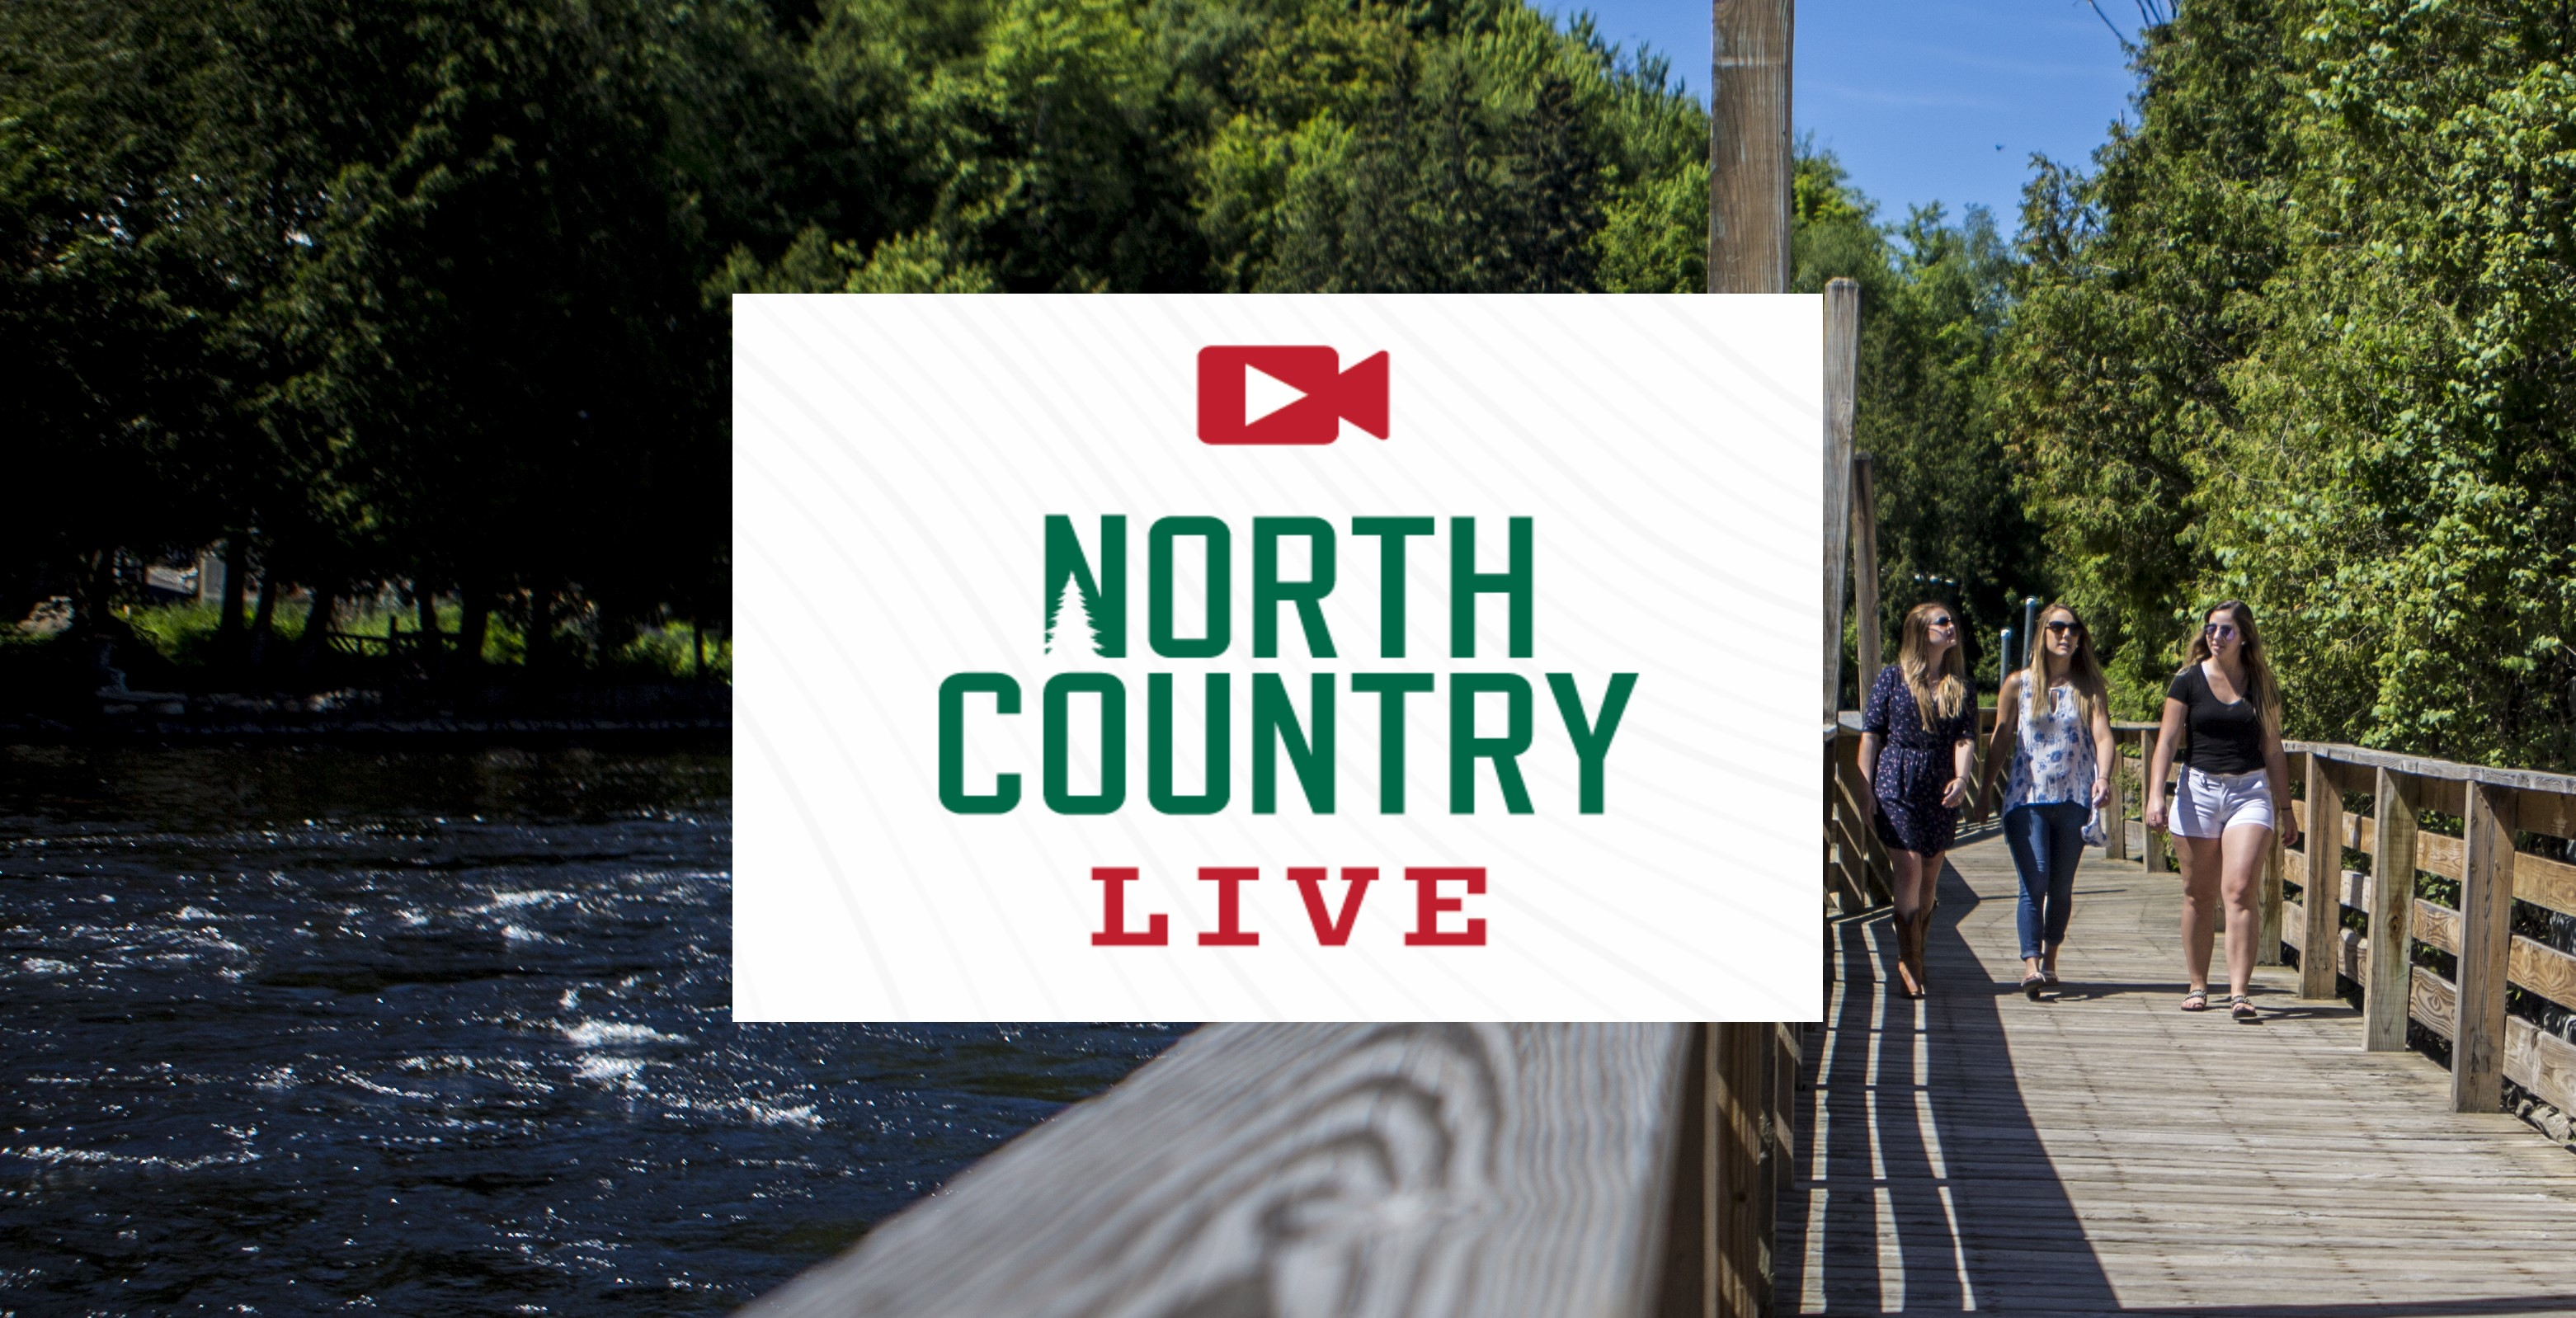 North Country Live logo set against a picture of the Saranac River.